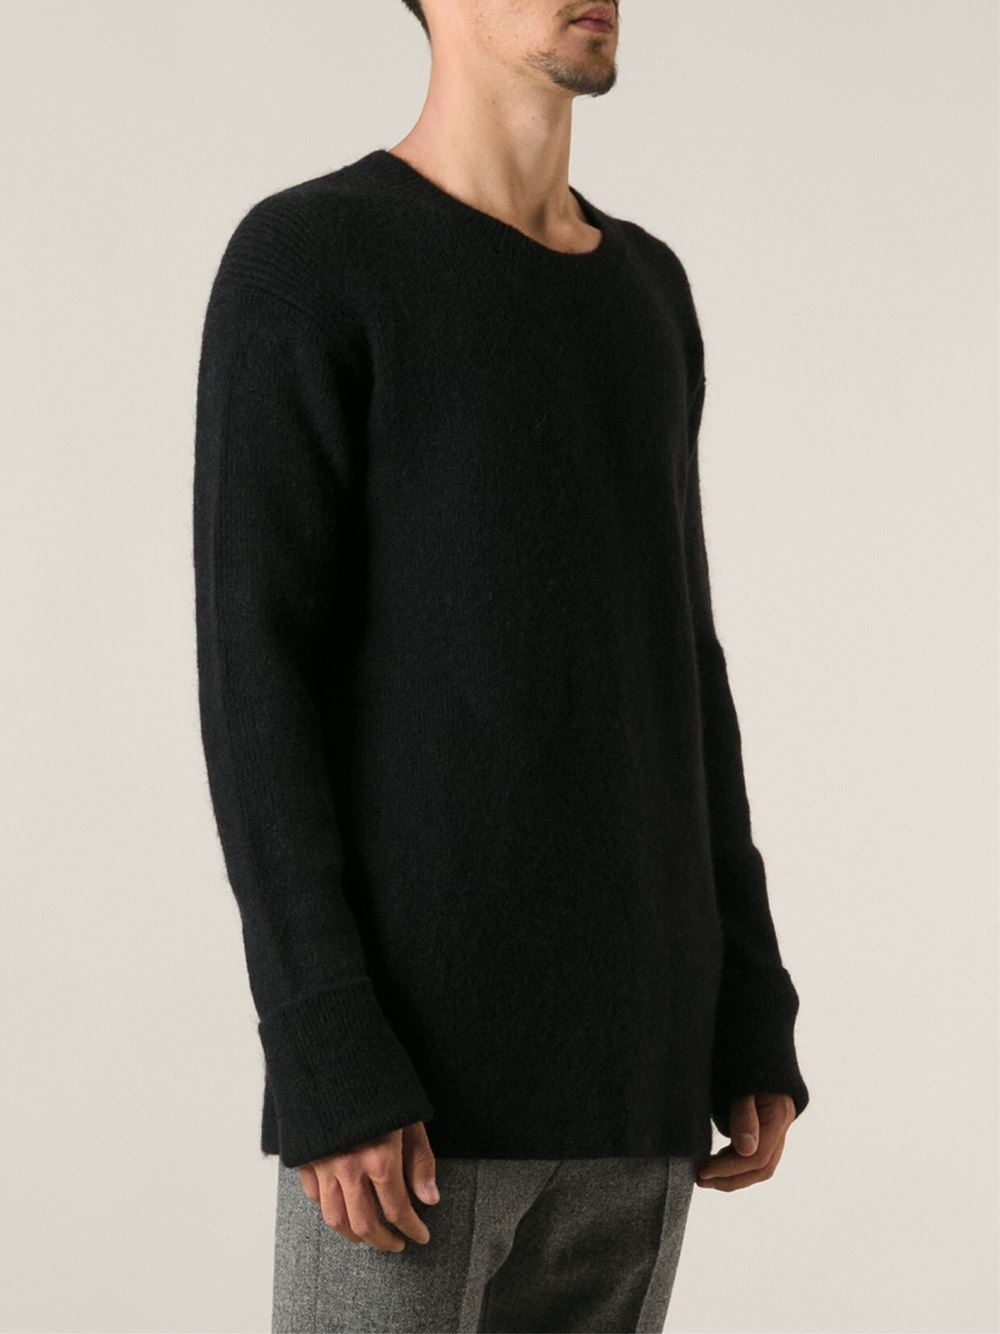 Haider ackermann Vigari Ribbed Sweater in Black for Men | Lyst